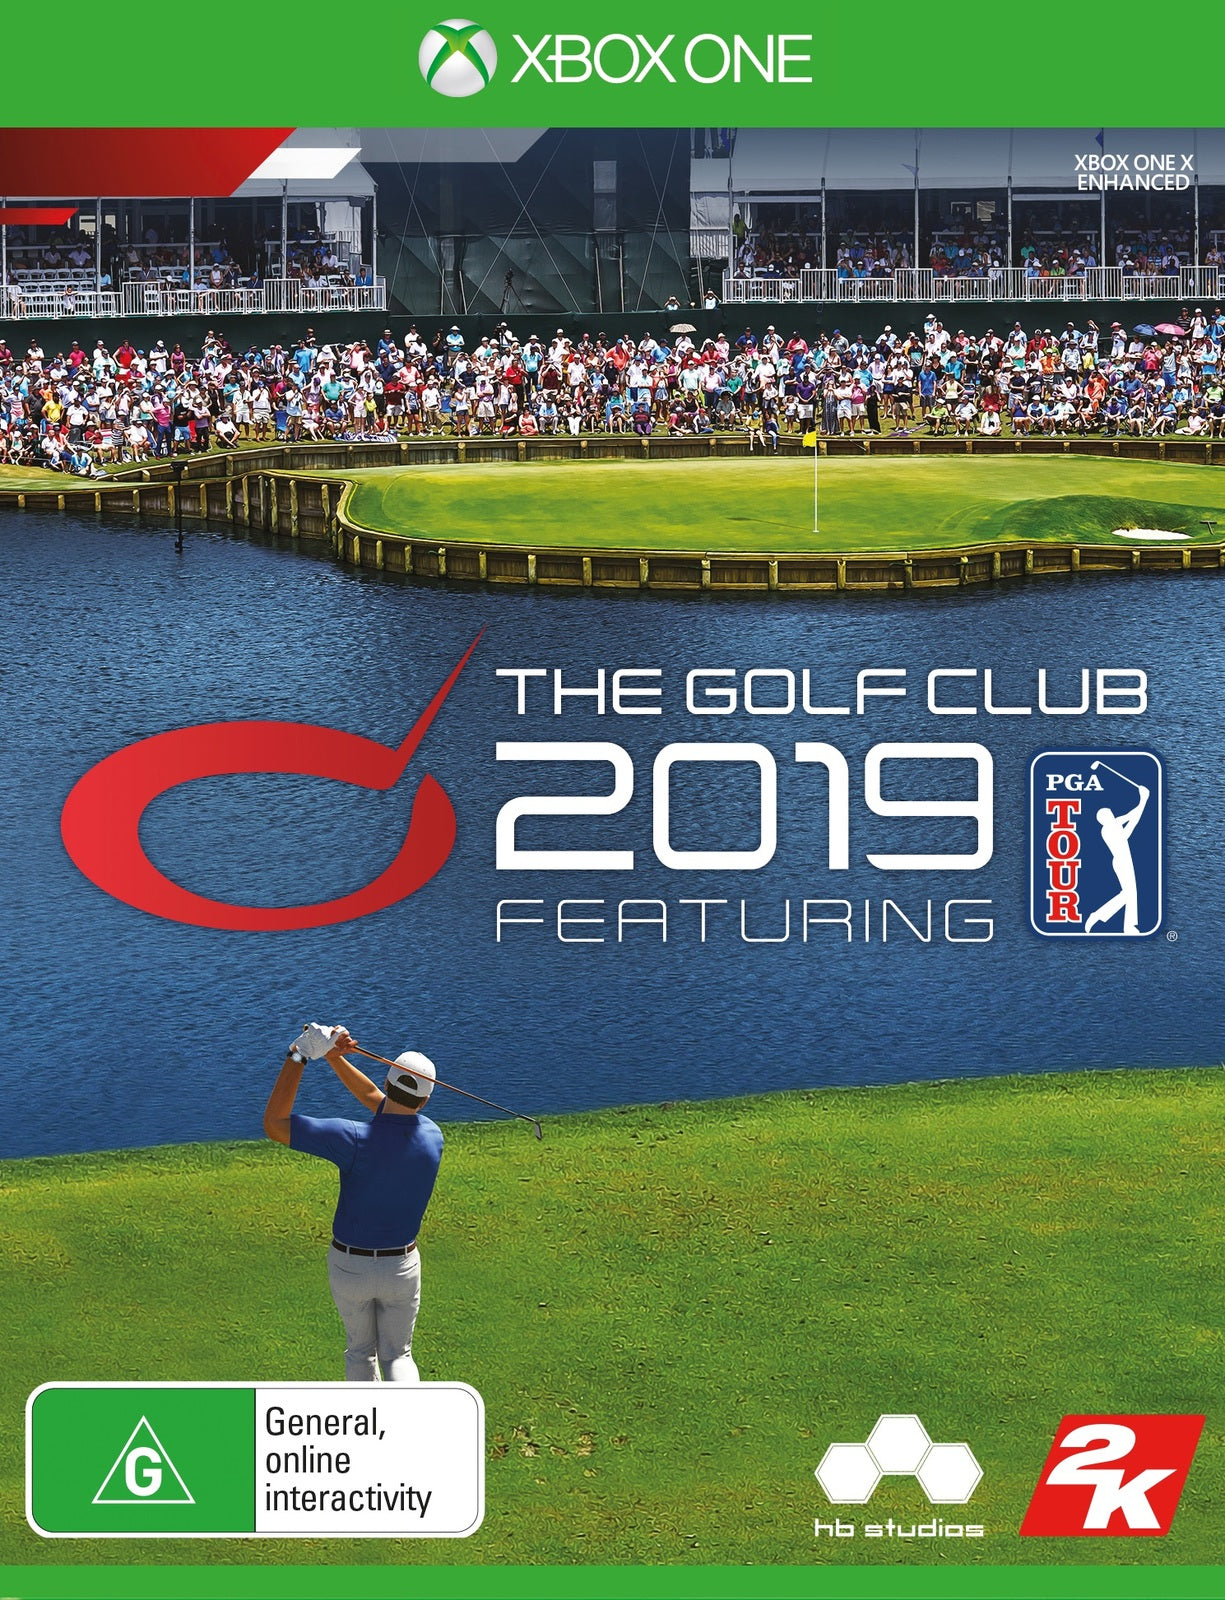 The Golf Club 2019 Featuring PGA Tour - Xbox One